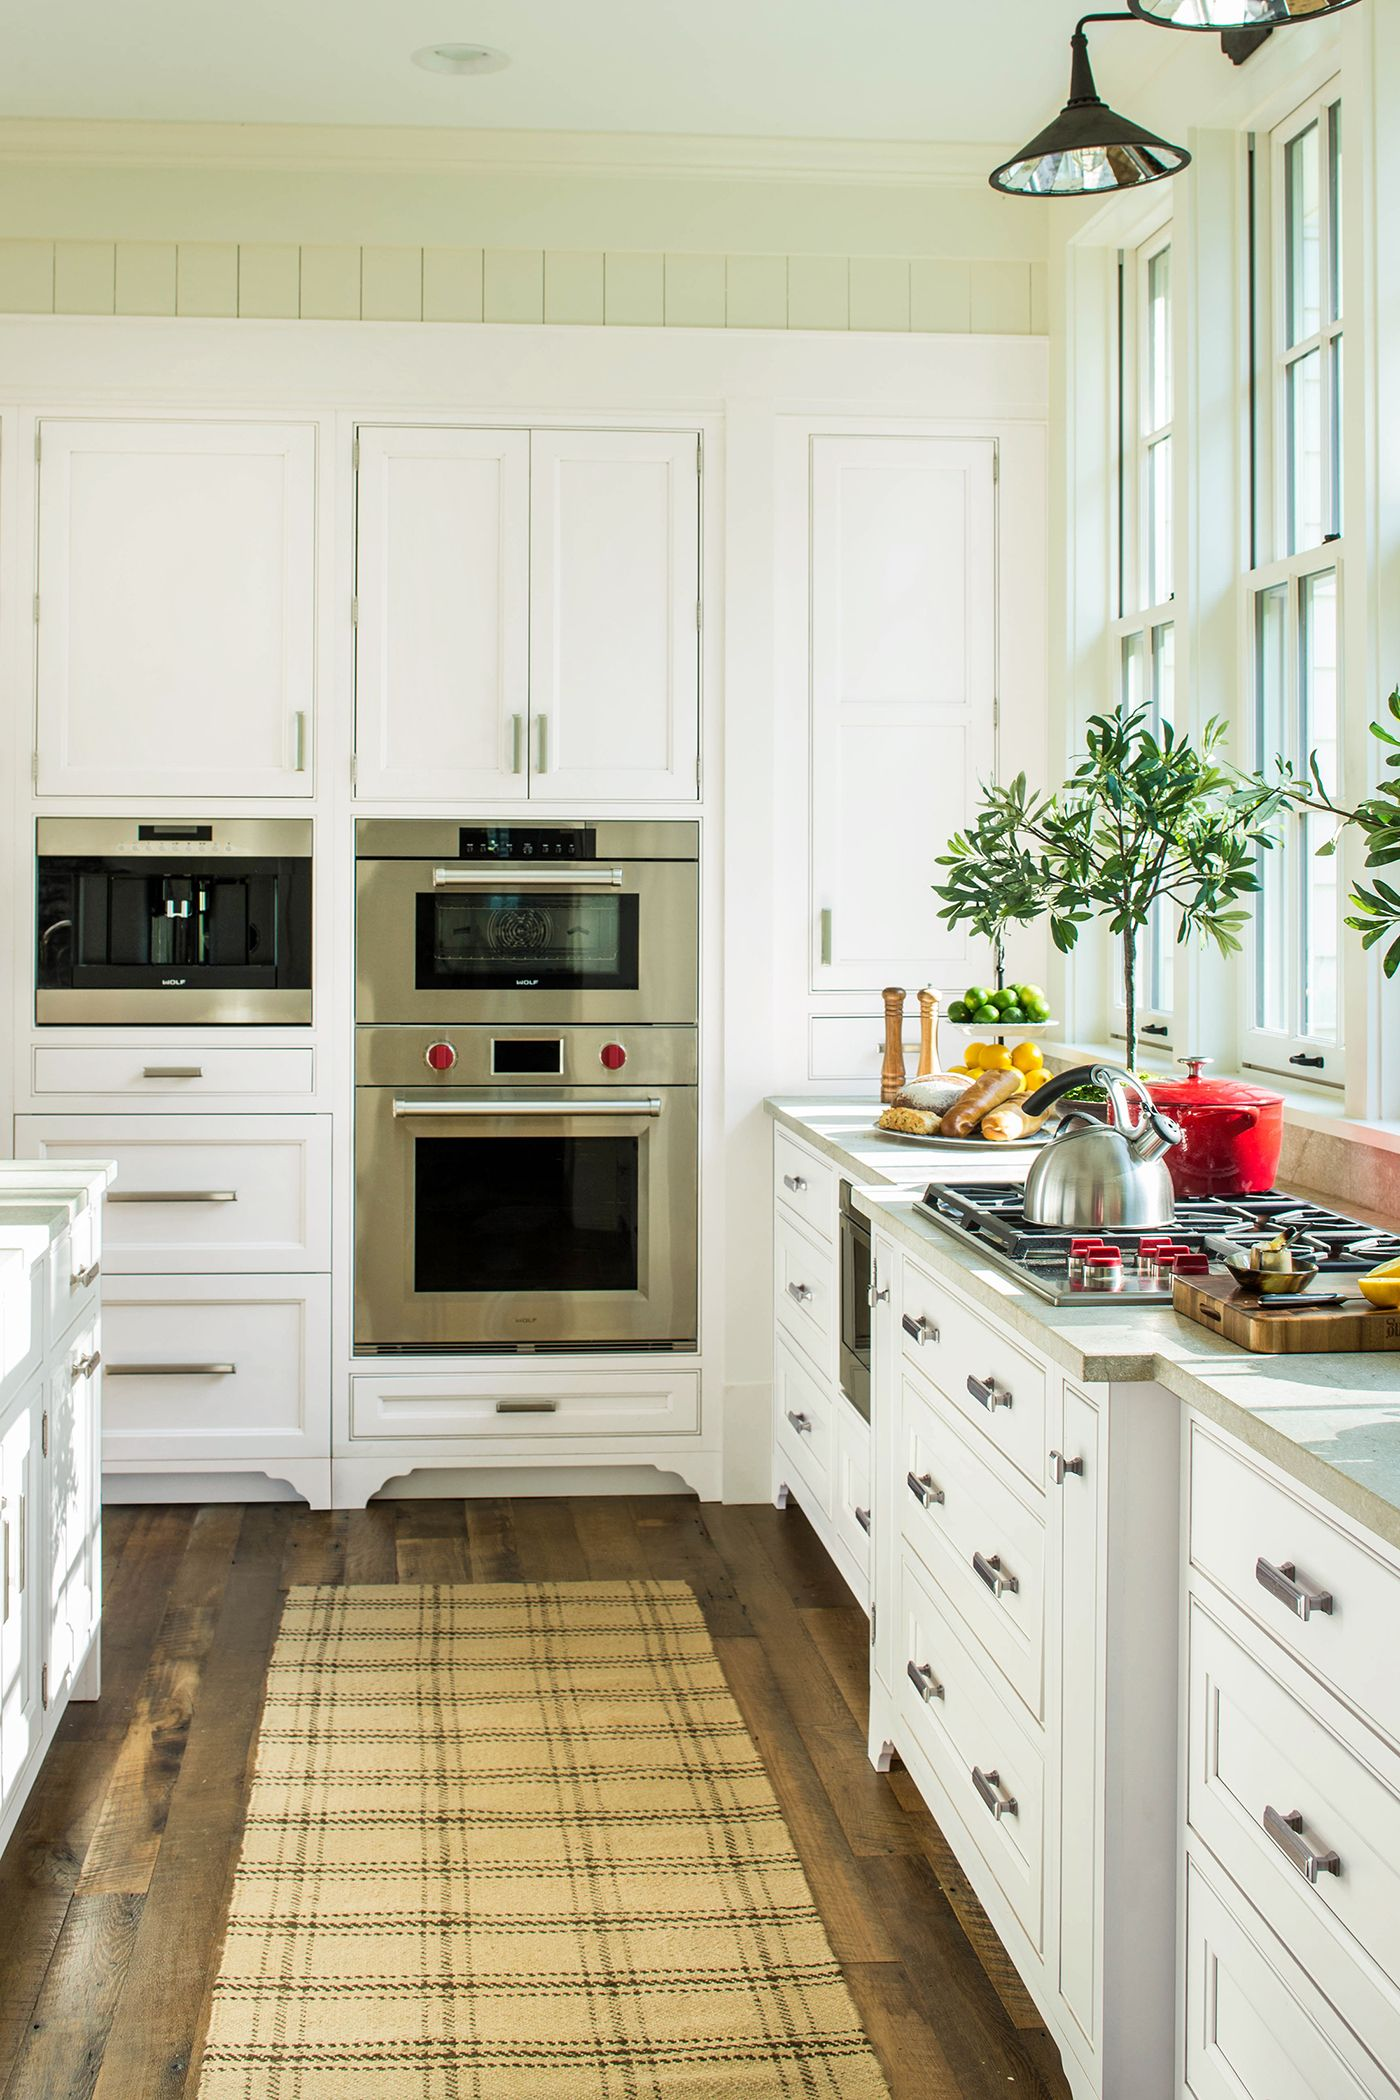 Best White Wellborn Cabinetry In The 2015 Southern Living Idea 400 x 300